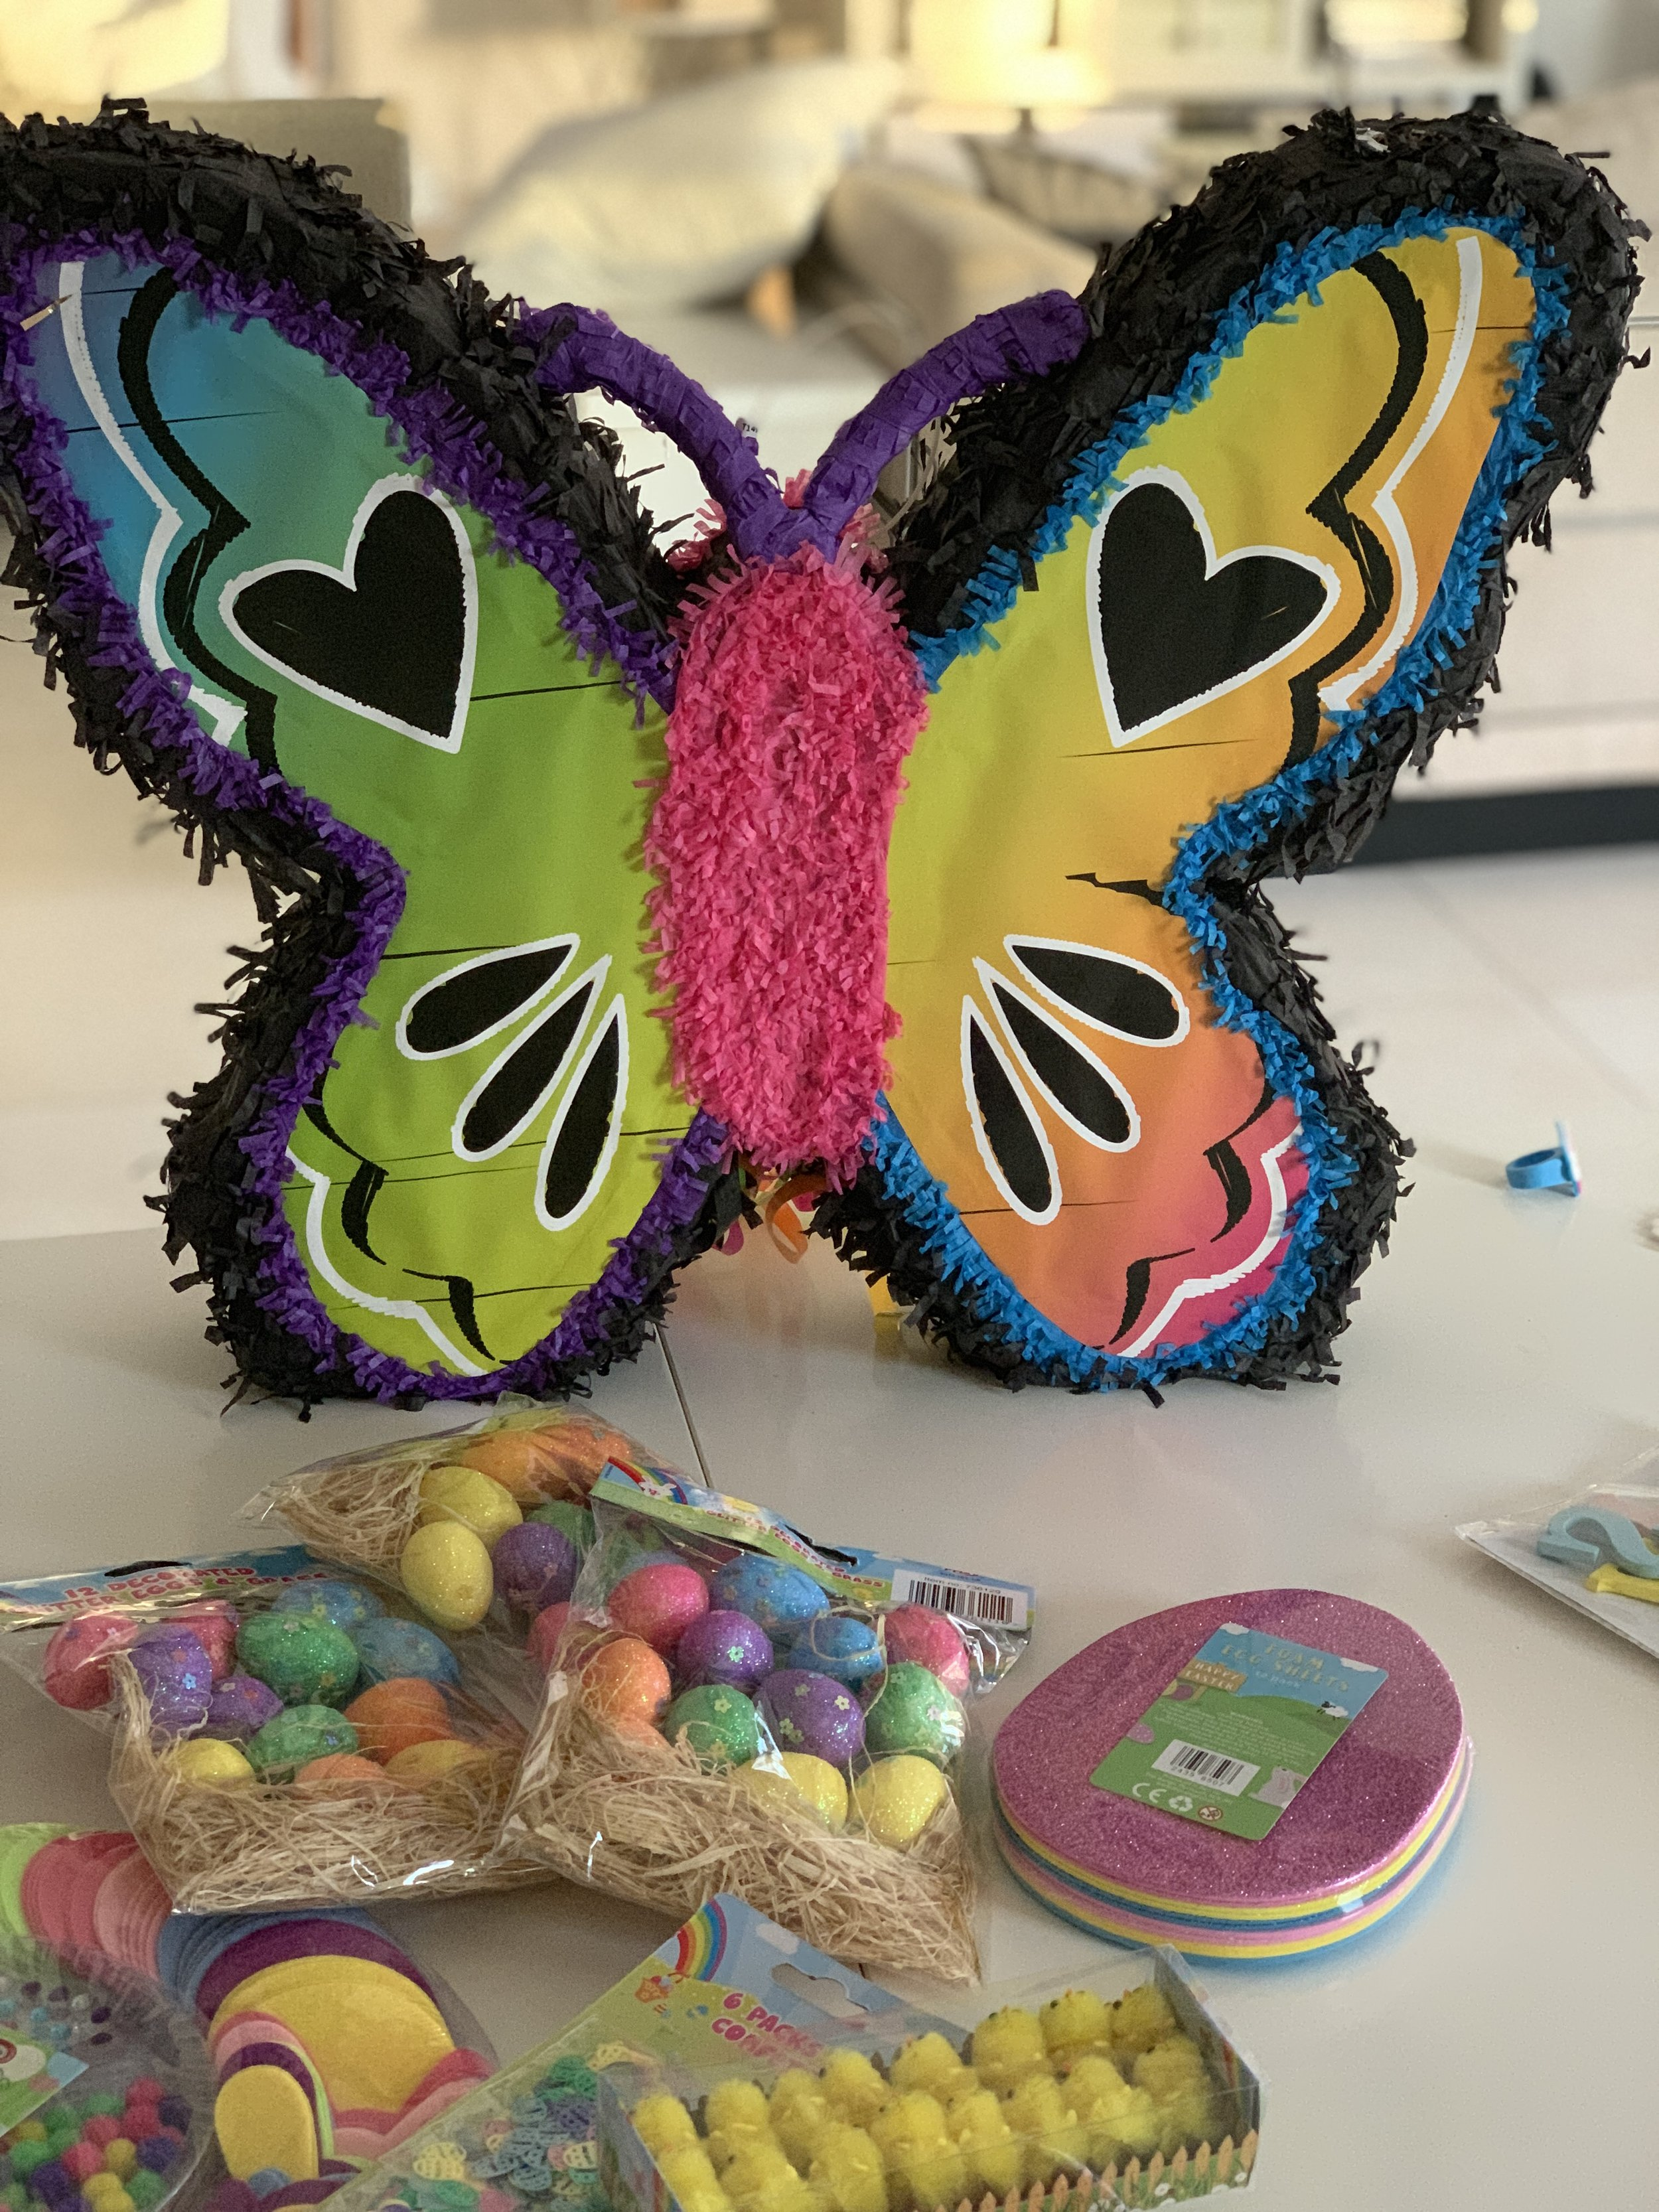 The most spring-like piñata (from Creative Minds) I could find